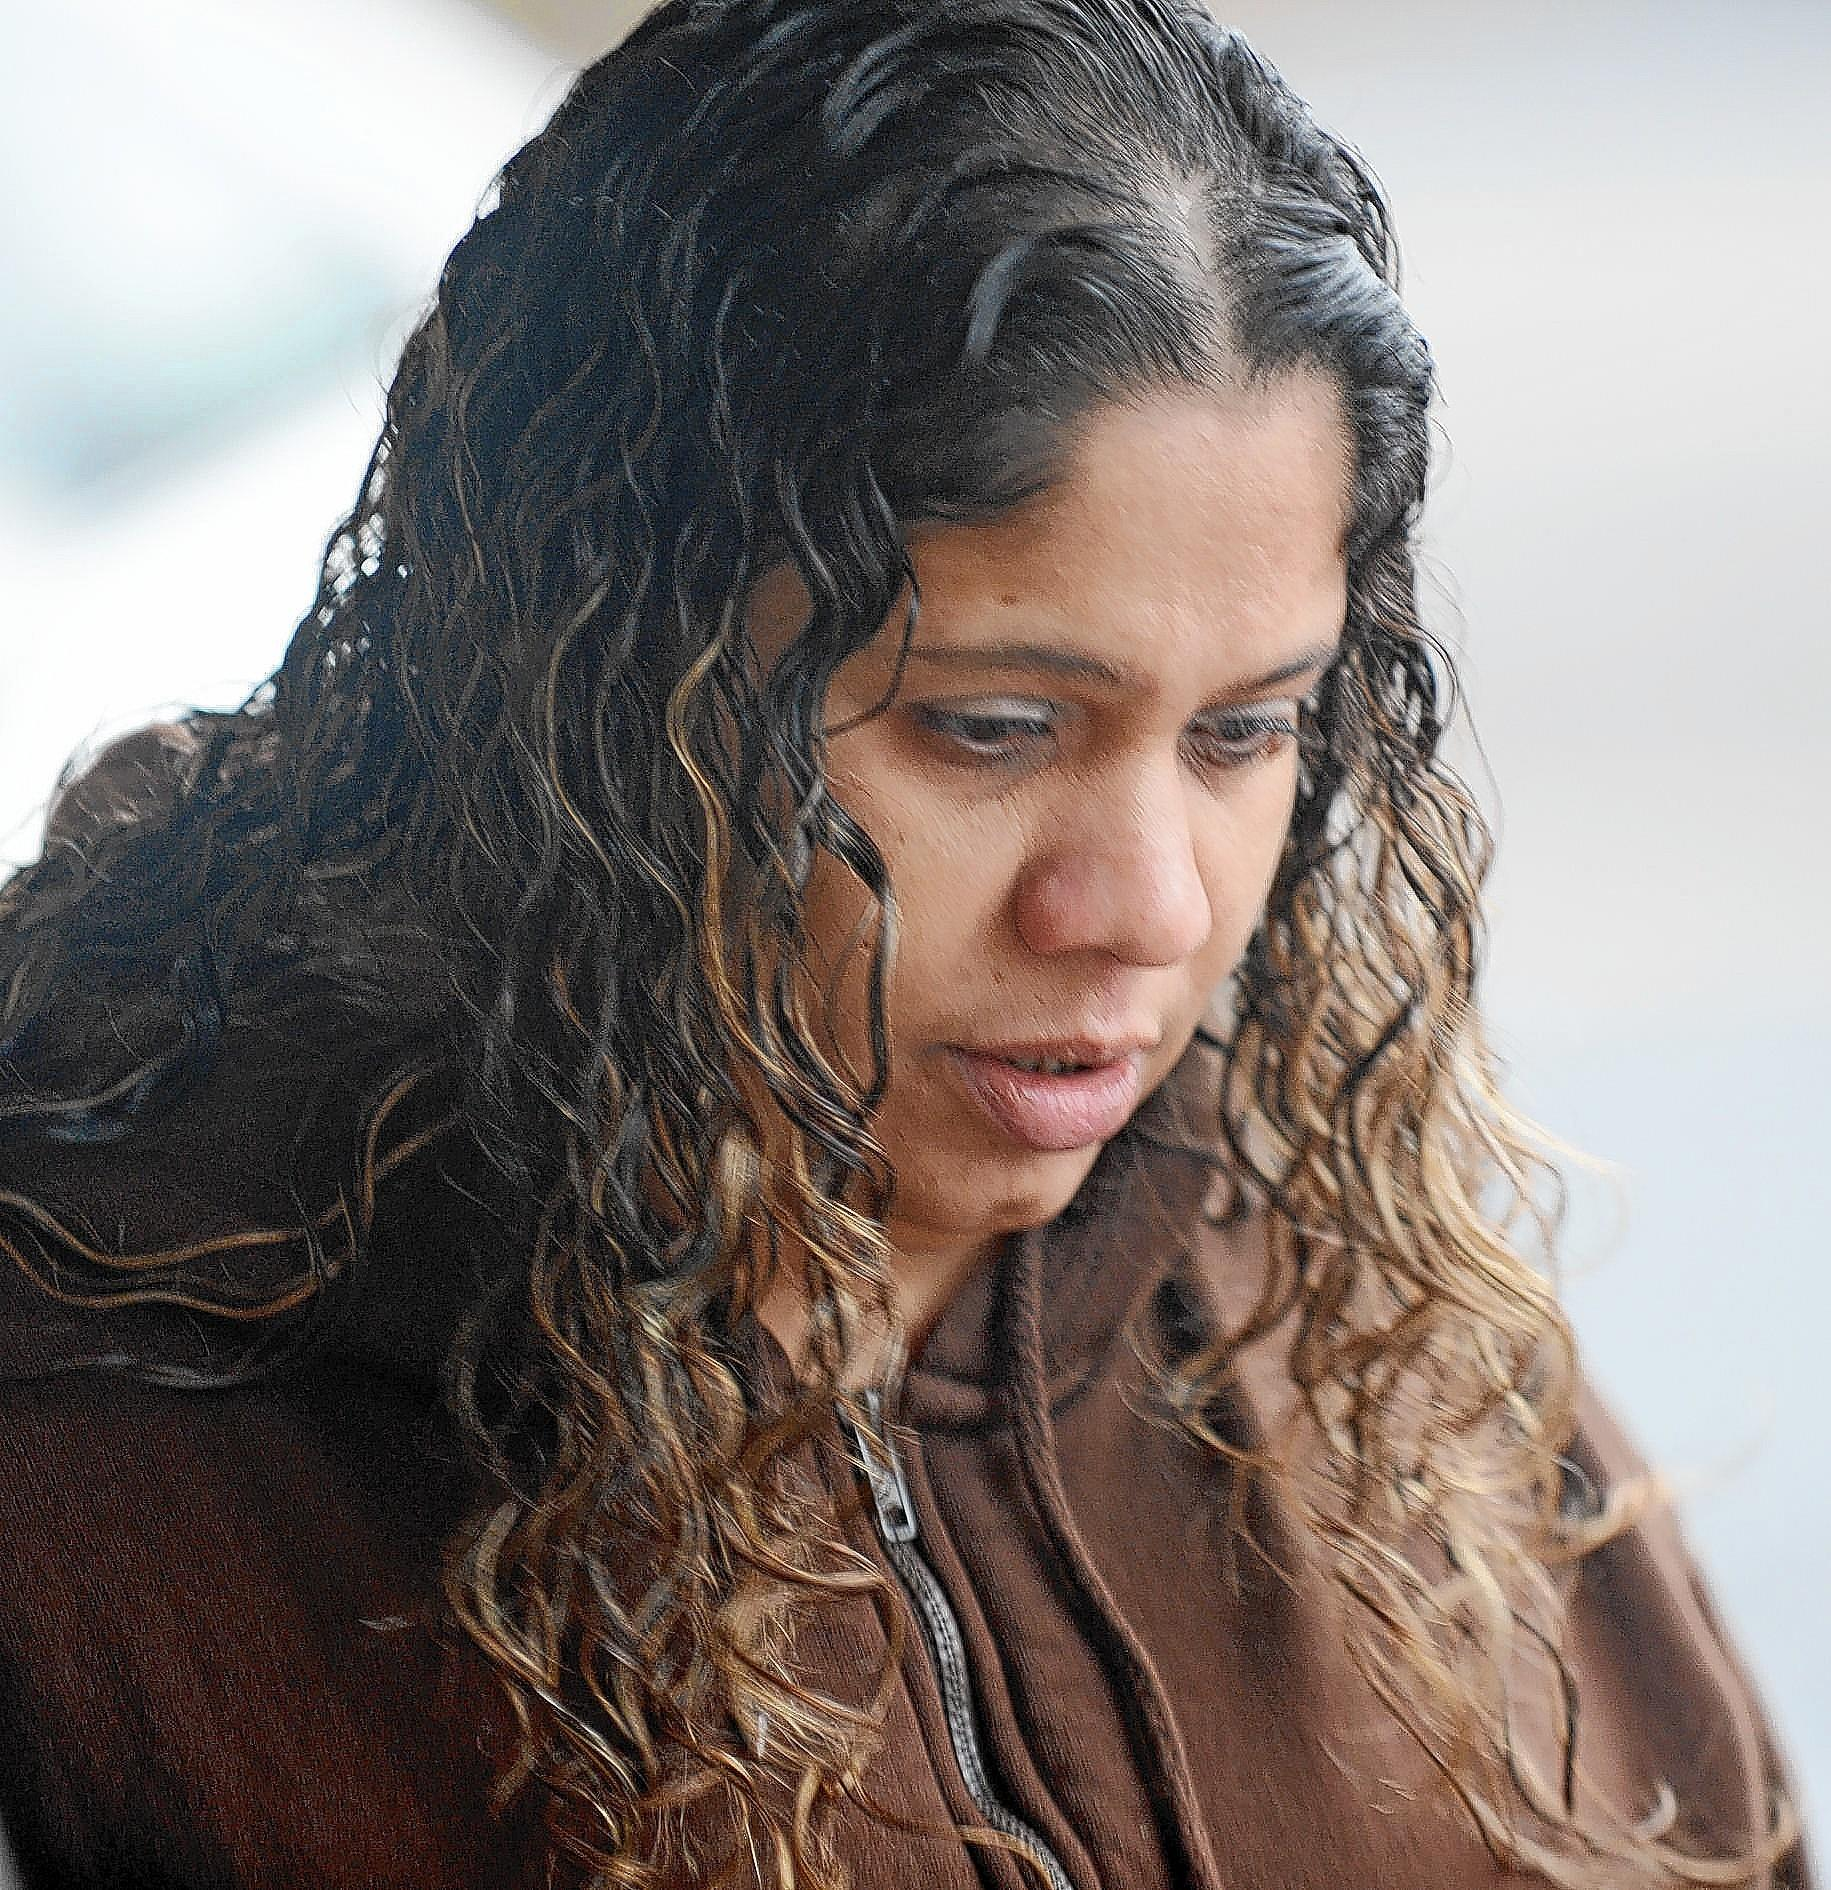 Trial is underway for Theresa Leguillow Flores, who is accused of stealing more than $103,000 from the Bethlehem YMCA.